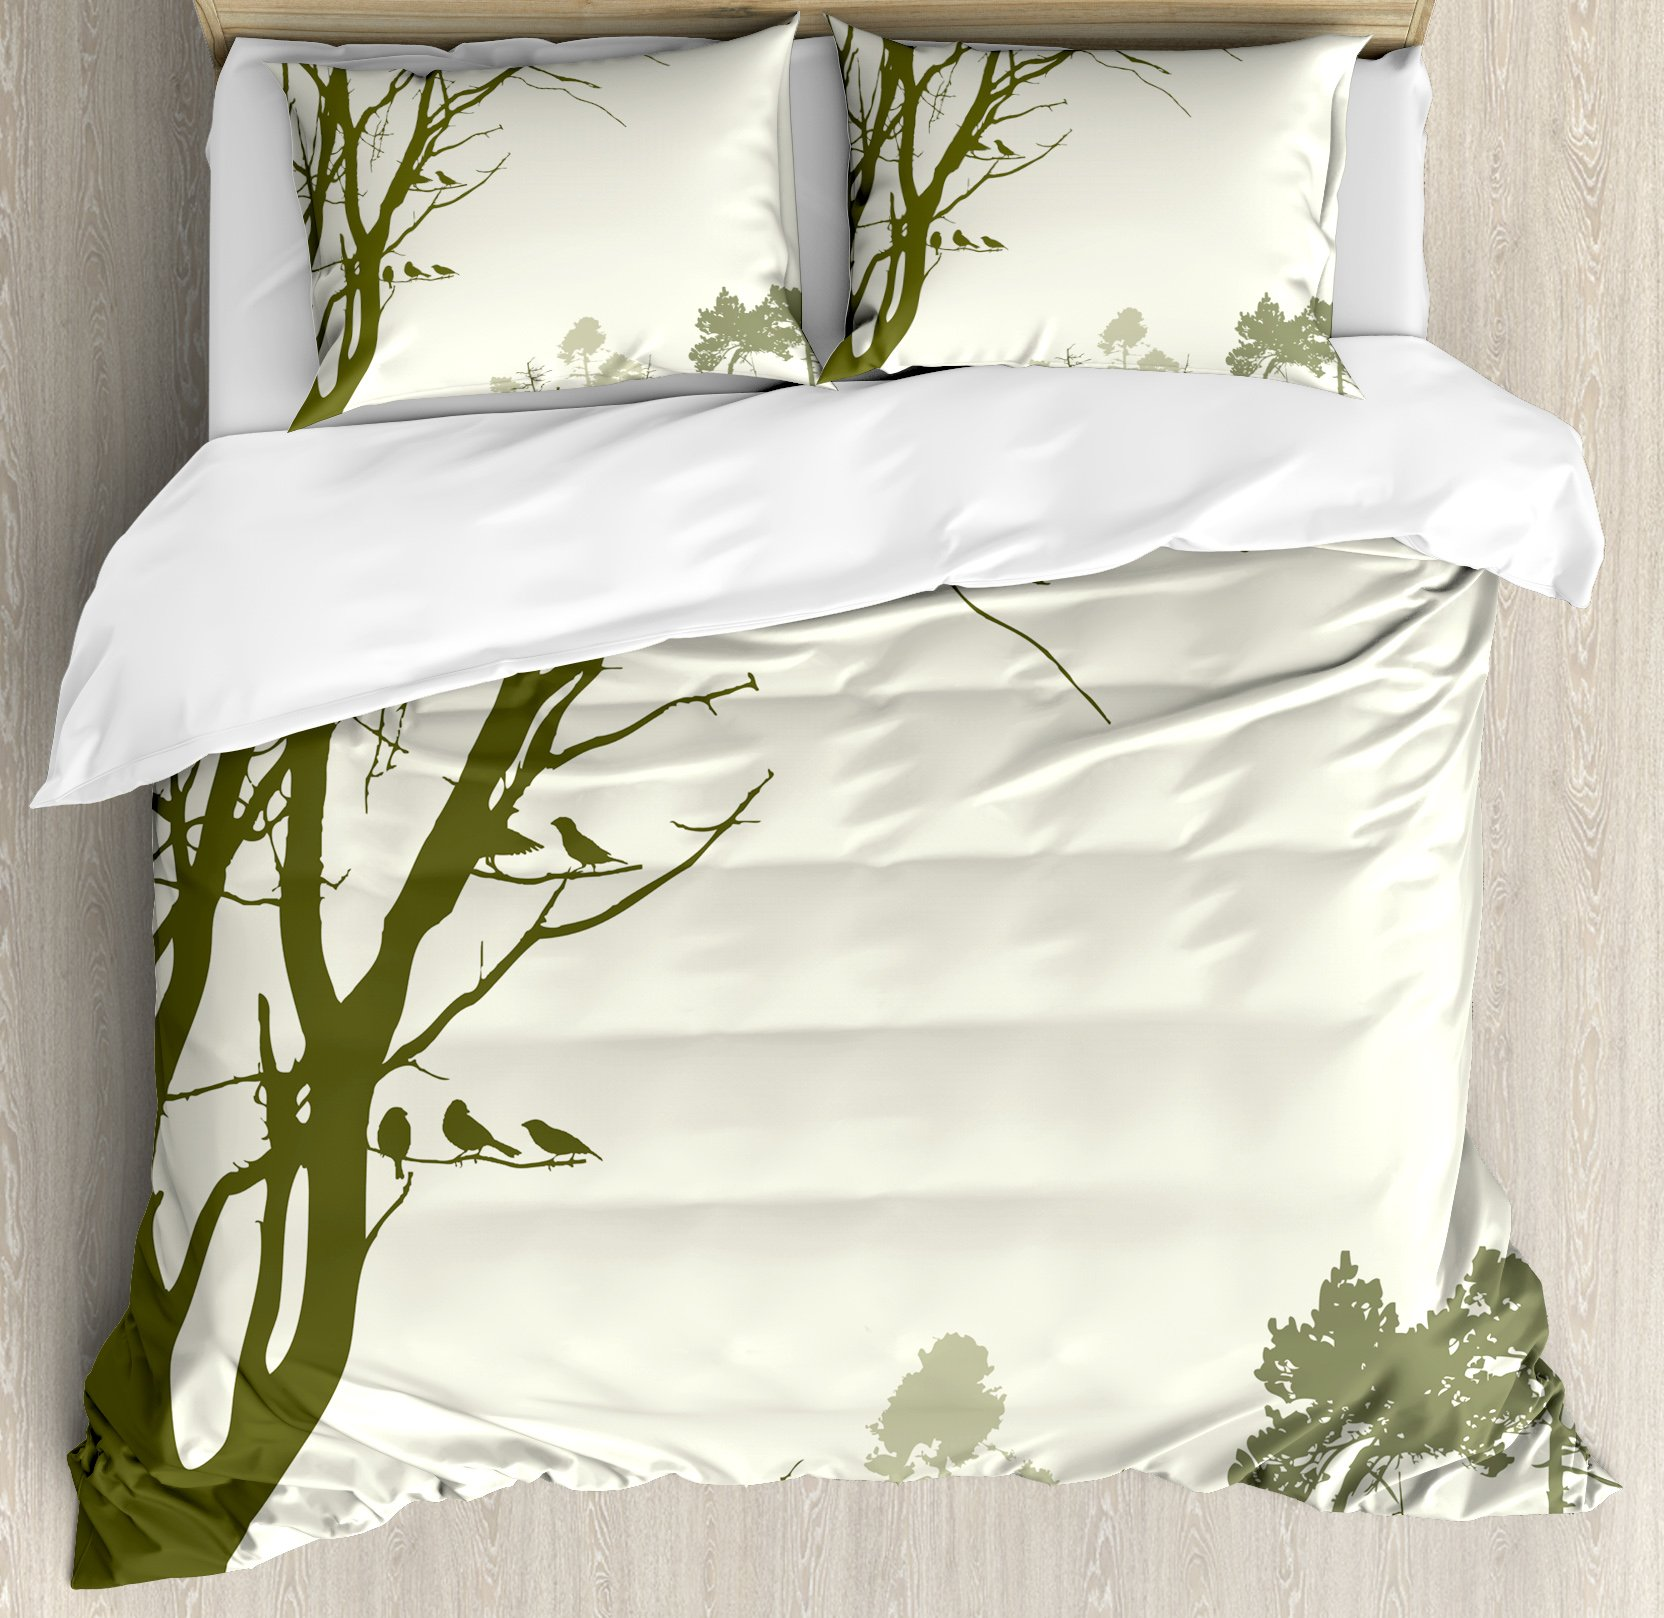 Forest Duvet Cover Set King Size by Ambesonne, Nature Theme The Panorama of a Forest Pattern Birds on Tree Branches Print, Decorative 3 Piece Bedding Set with 2 Pillow Shams, Olive Green Cream